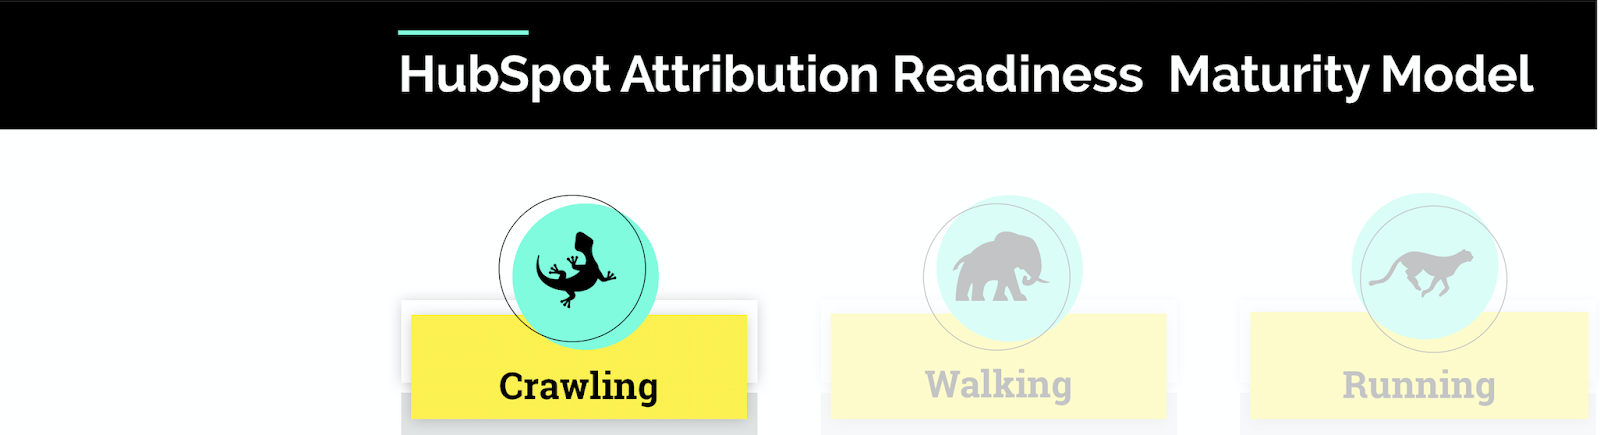 HubSpot Attribution Readiness Crawling Result